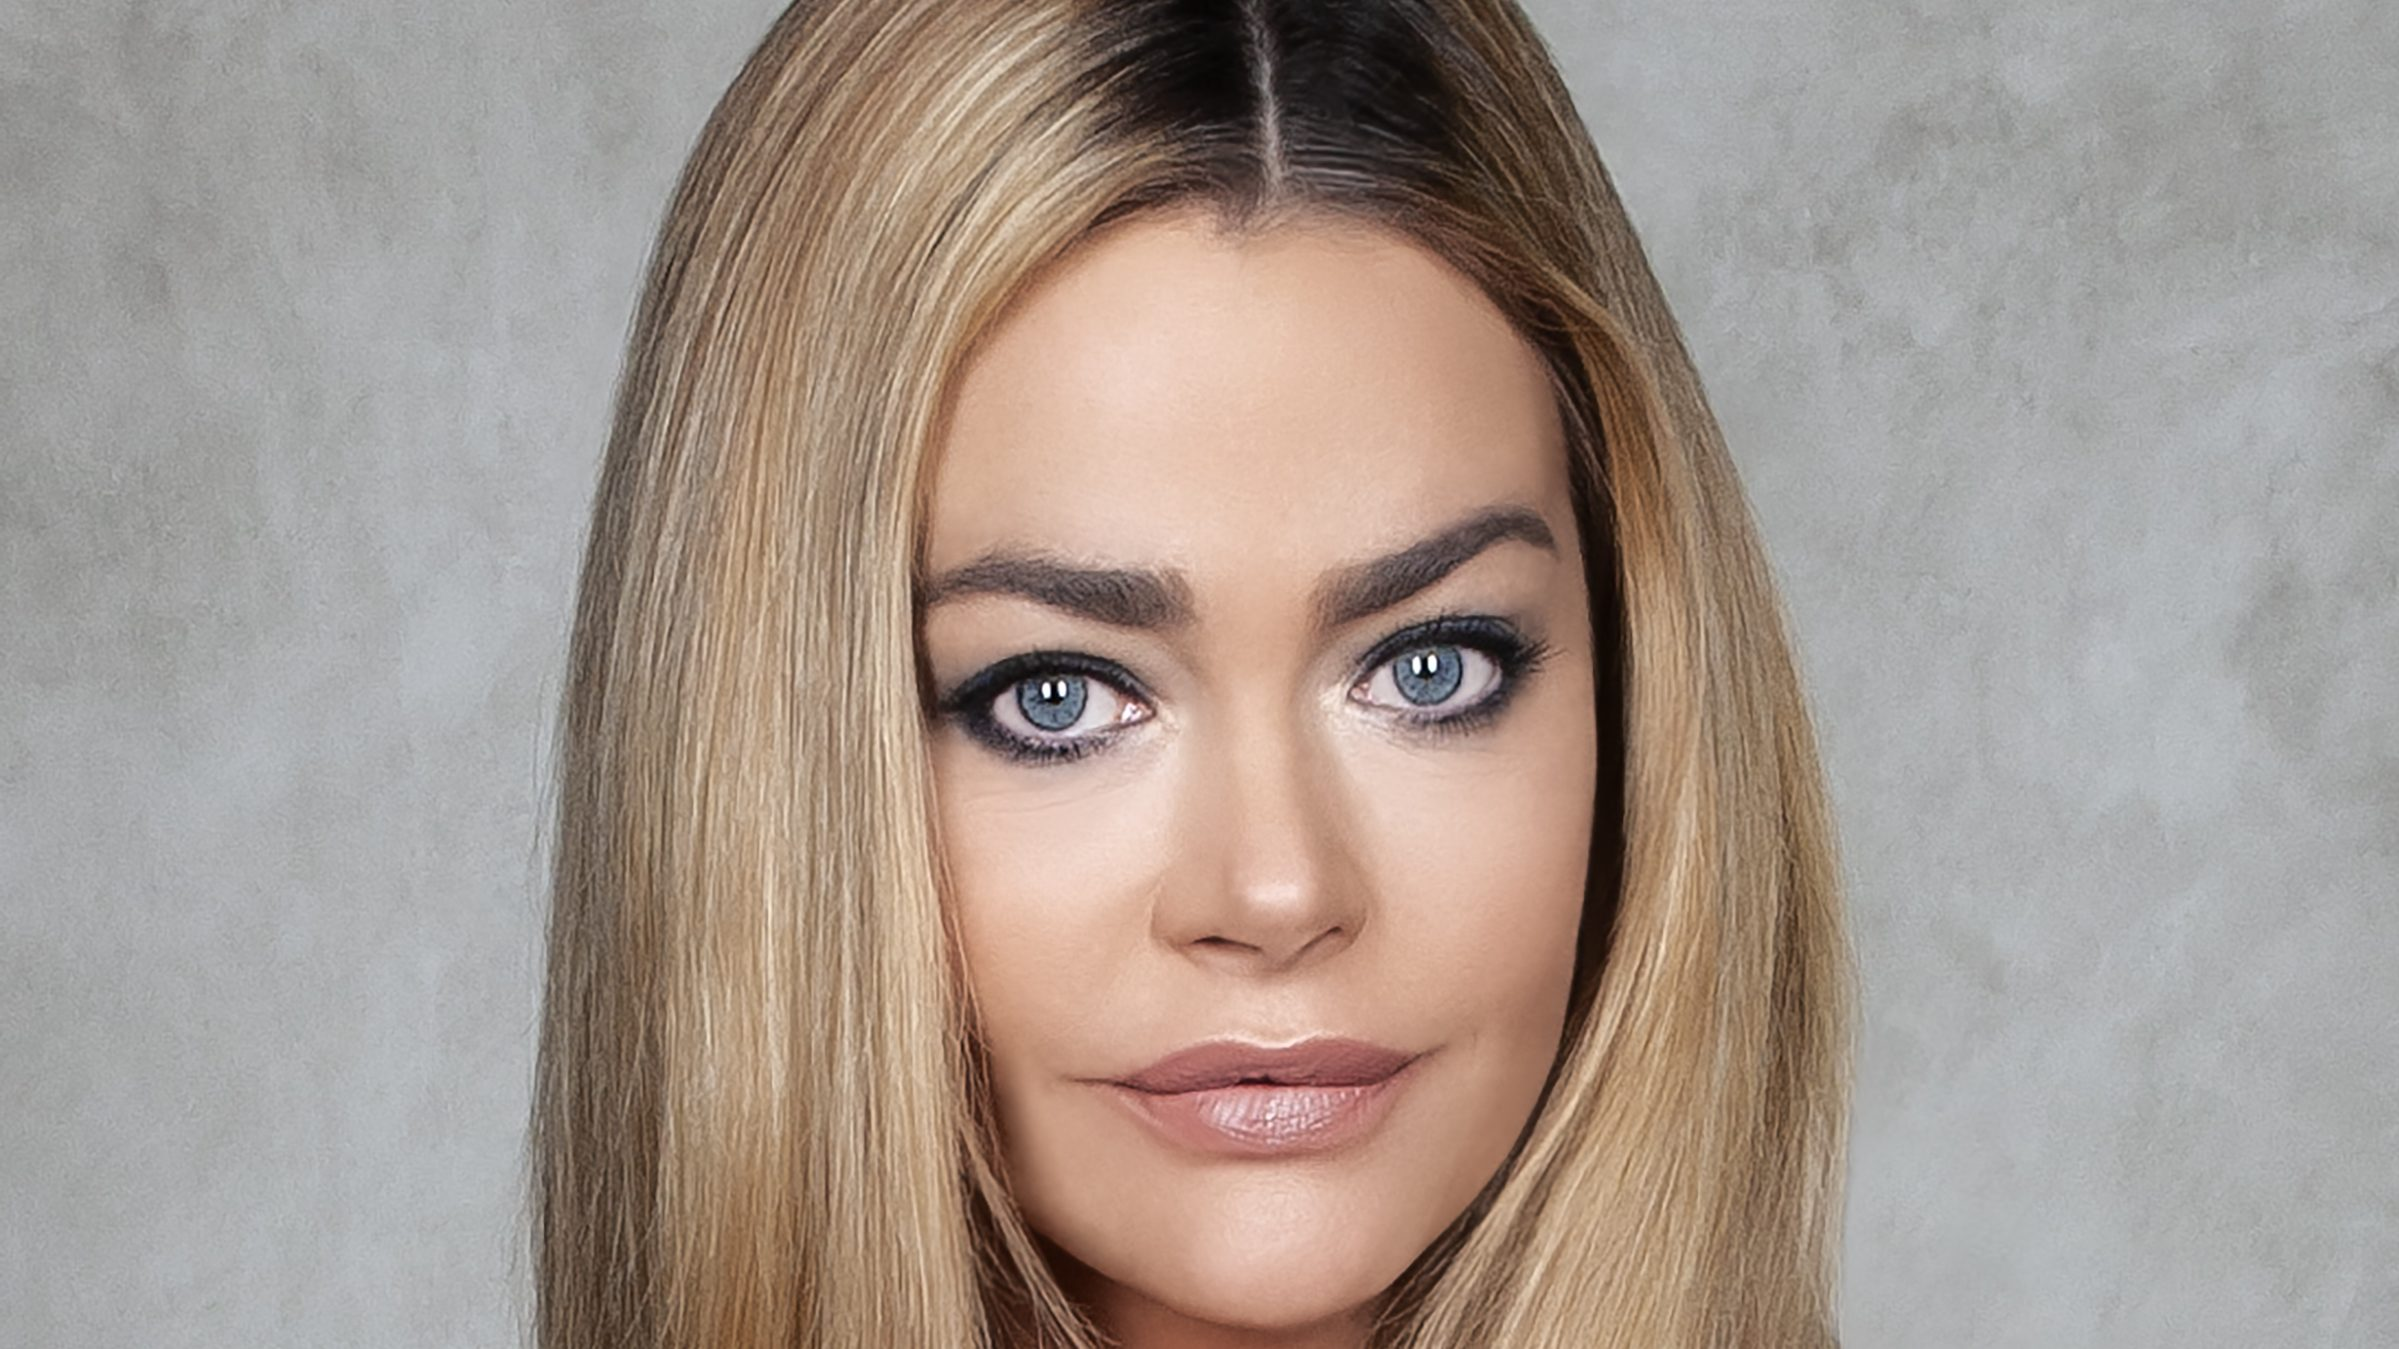 Denise Richards To Star In Family Comedy 'The Junkyard Dogs' From Verdi Productions